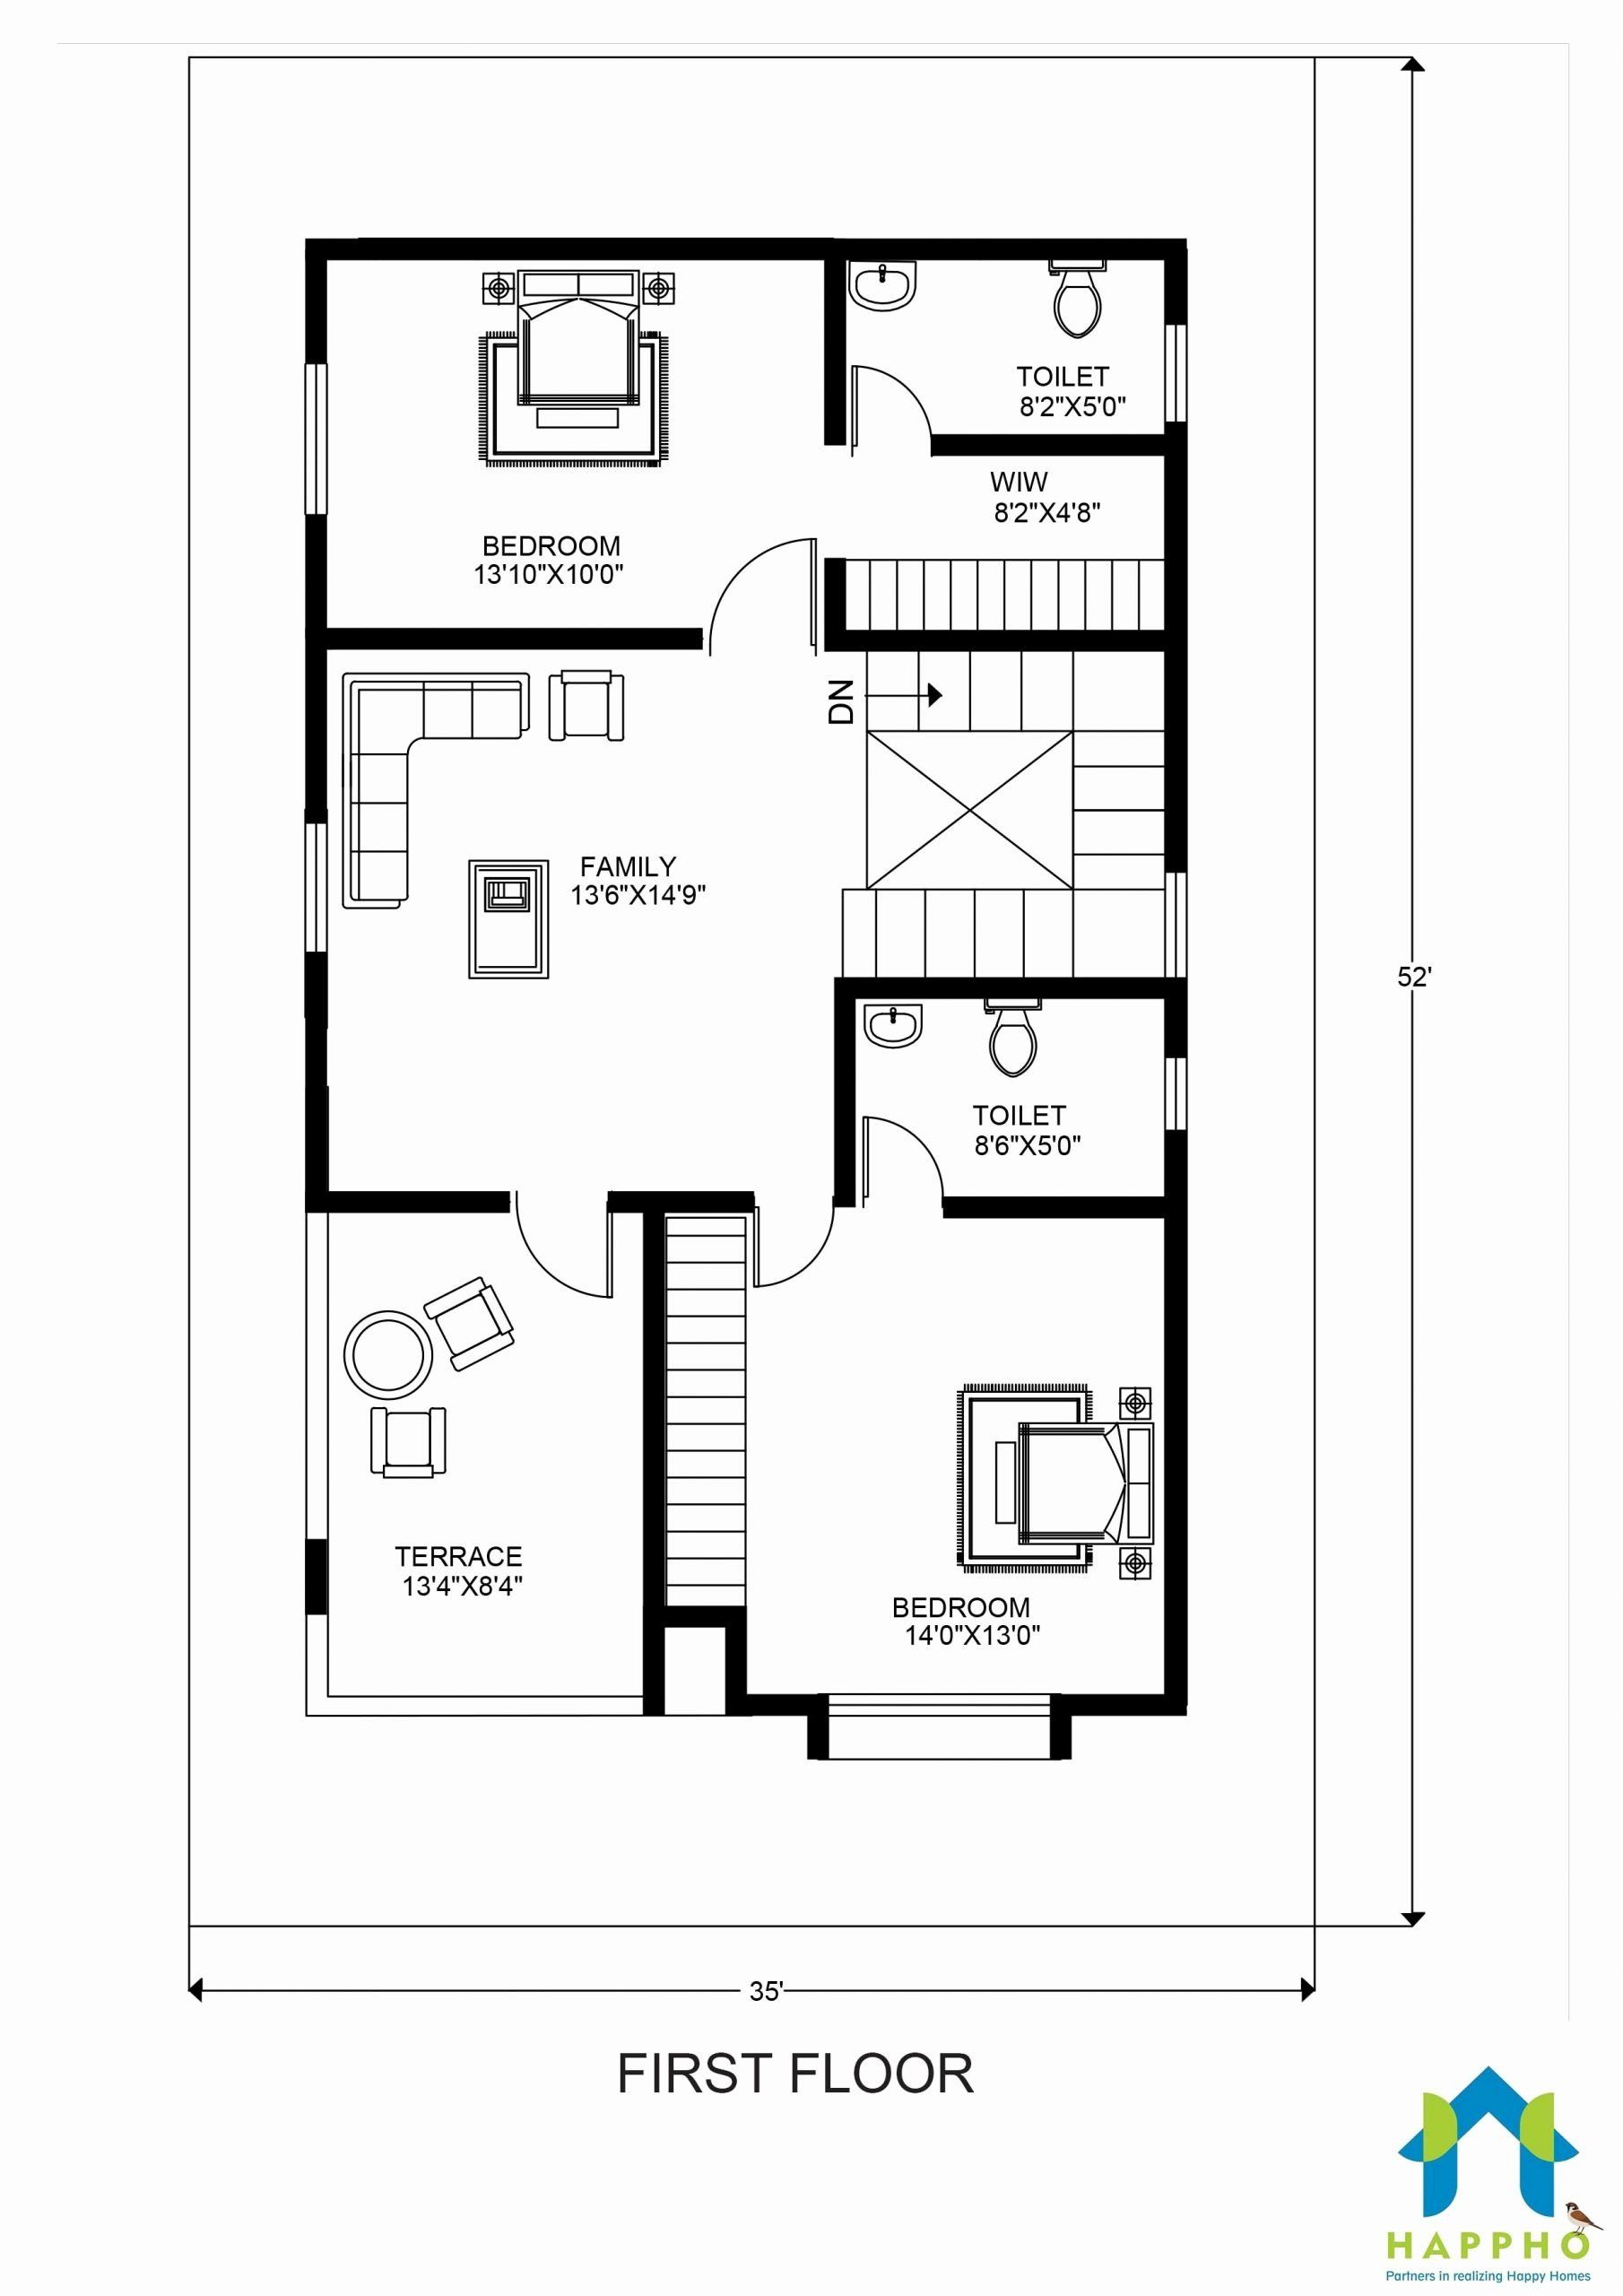 50 X 30 House Plans New Floor Plan For 30 X 50 Feet Plot Unique Floor Plans Tiny House Floor Plans 20x40 House Plans